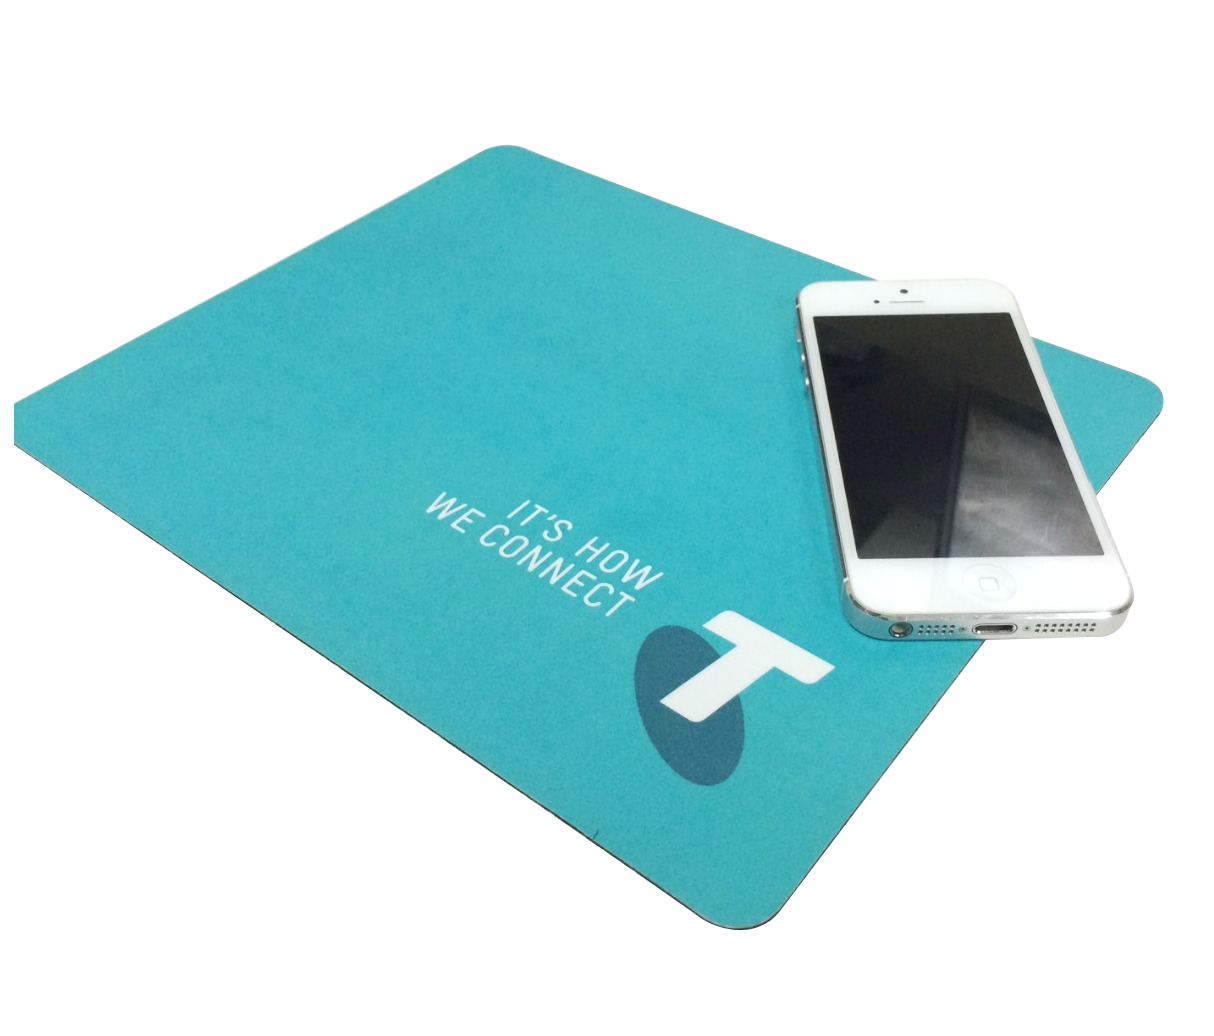 Slim Large Deluxe Branded Mouse Pads